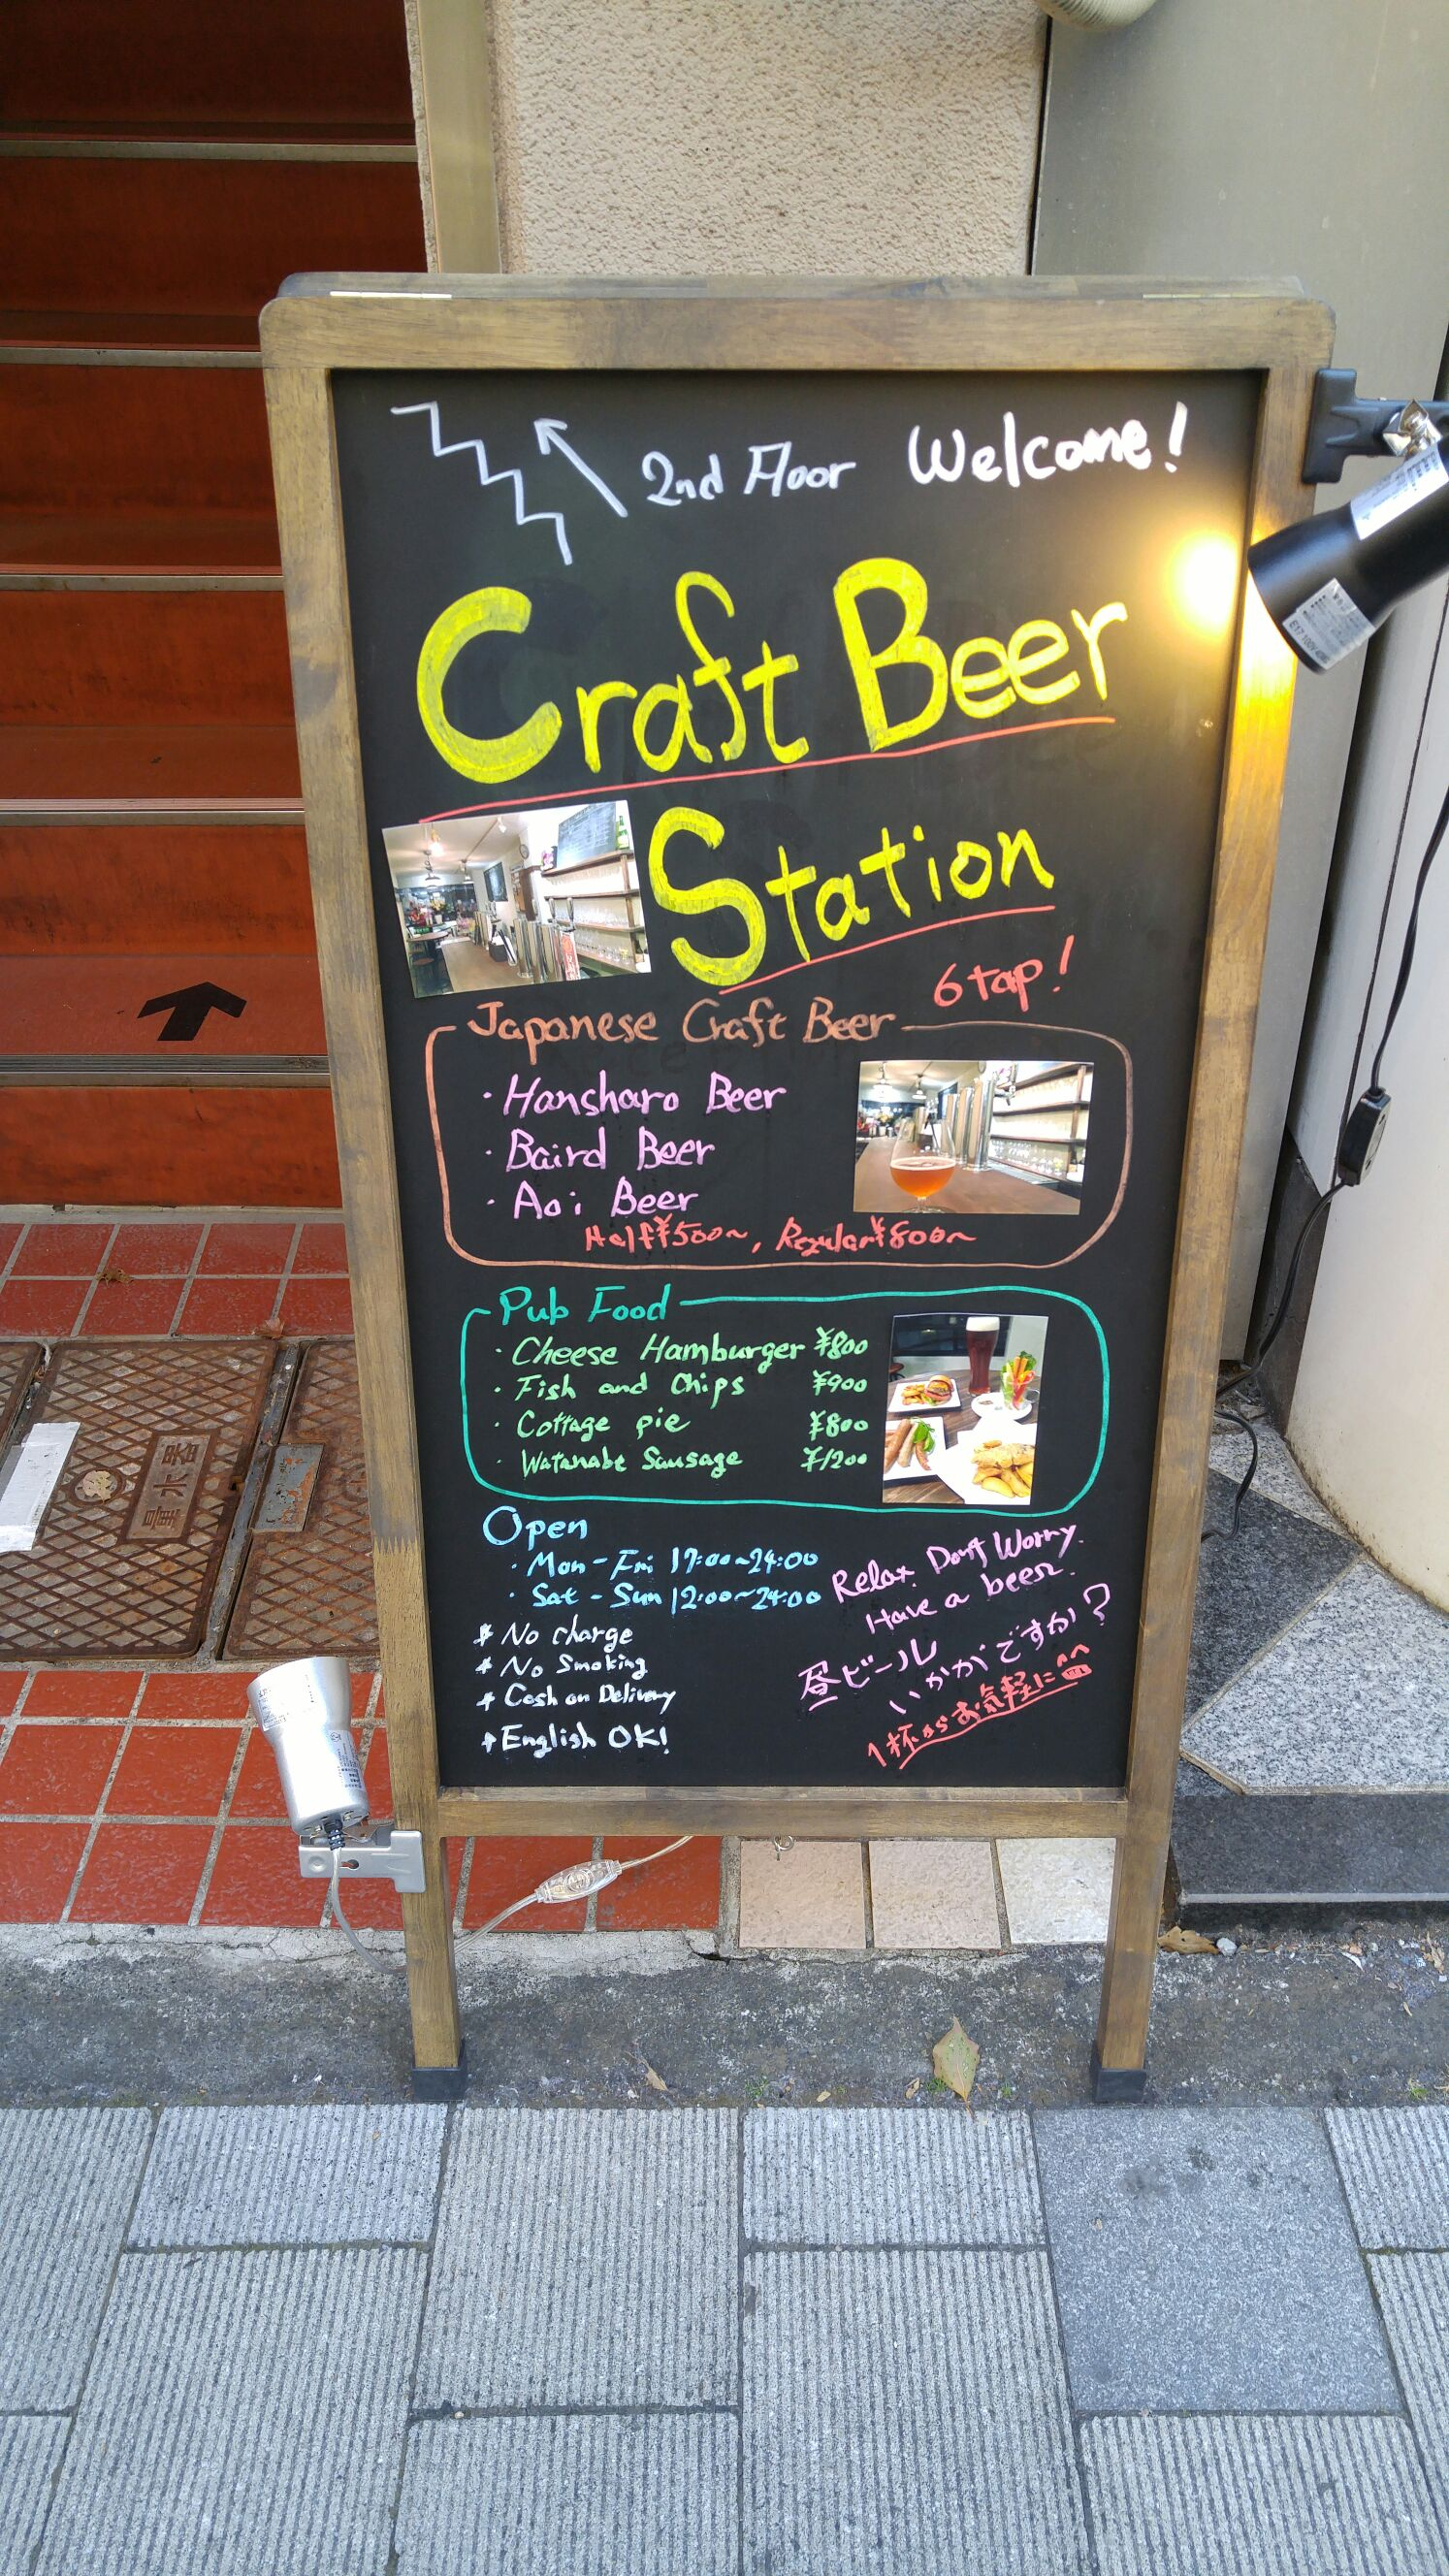 CRAFT-BEER-STATION-4